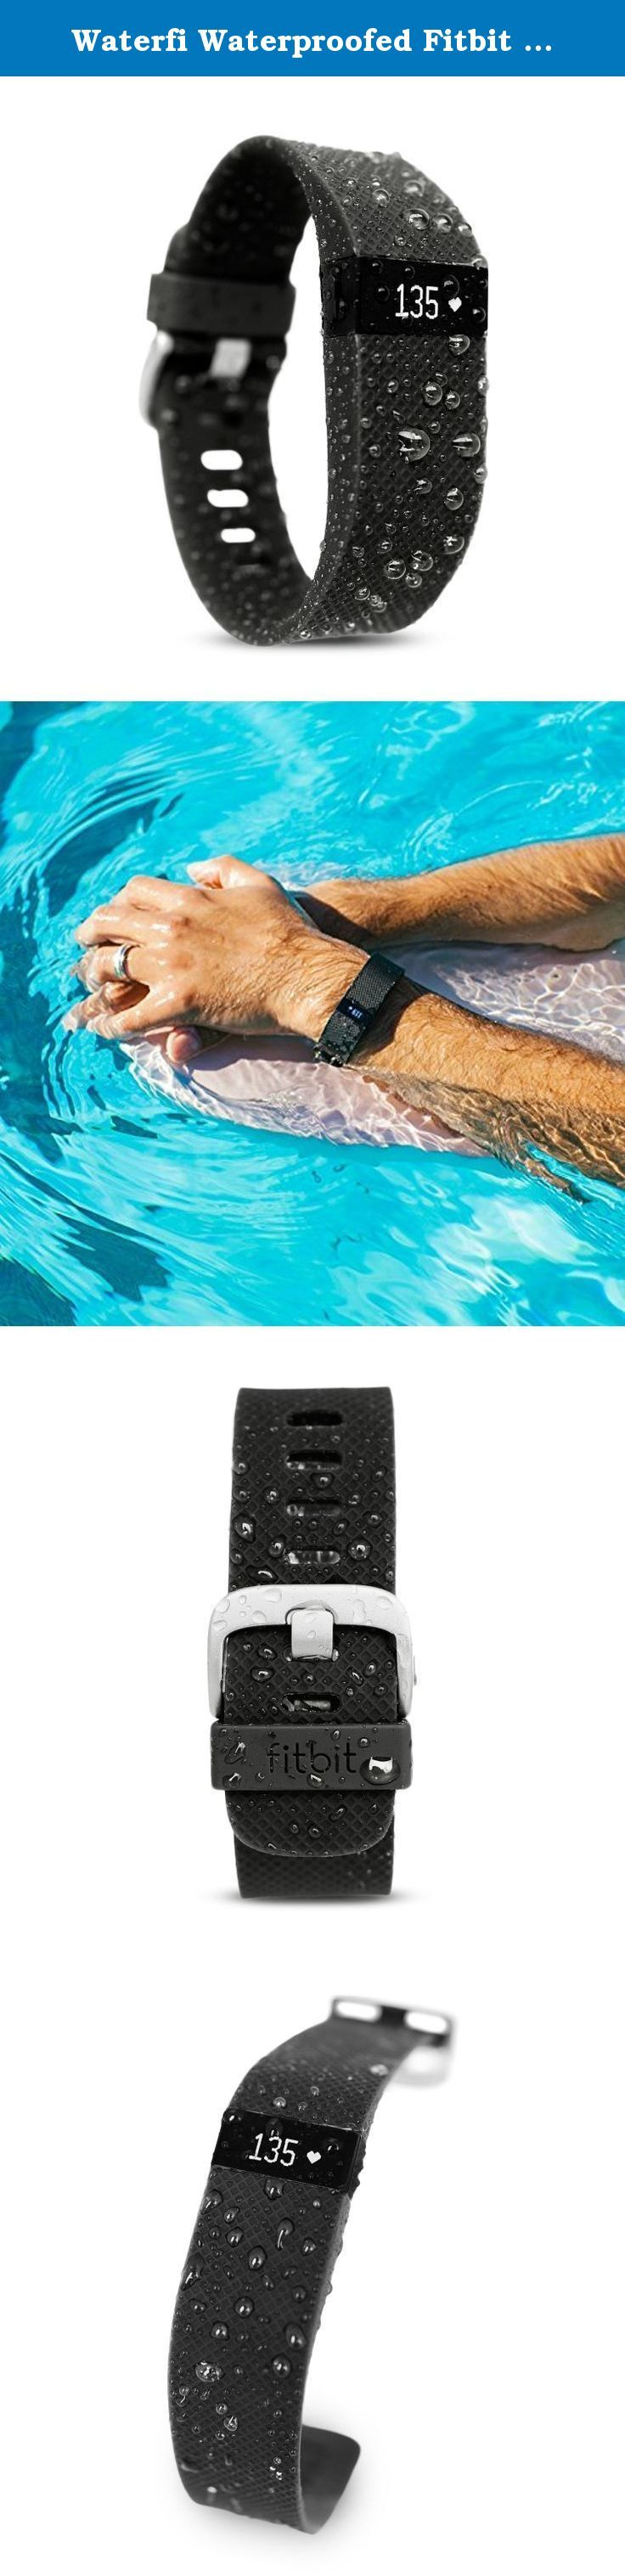 Waterfi Waterproofed Fitbit Charge HR Wireless Activity Tracker with Heart Rate Monitor (Large). WATERFI WATERPROOFING Completely waterproof down to 210 feet underwater, the Waterproofed Fitbit Flex has been waterproofed on the inside through our durable and long lasting waterproofing process so you can fully submerge your Fitbit Flex and go wherever your active life takes you. Learn more about Our Process. READY TO DIVE IN No longer limited to accidental splashes, the Waterproofed Fitbit...